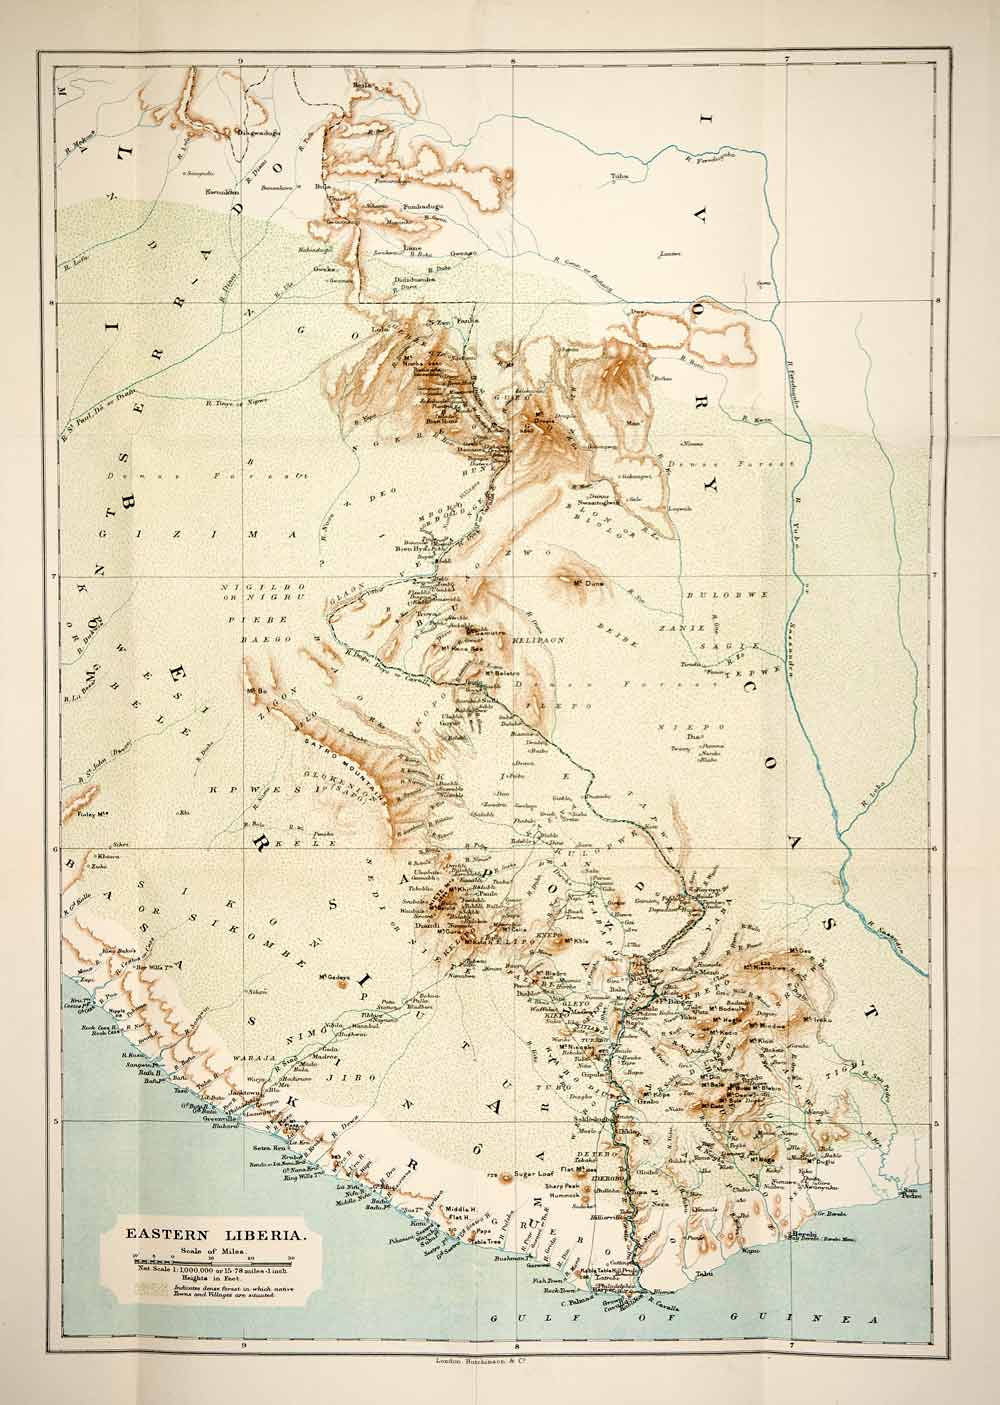 1906 Lithograph Antique Map Eastern Liberia Africa Greenville Palmas ...